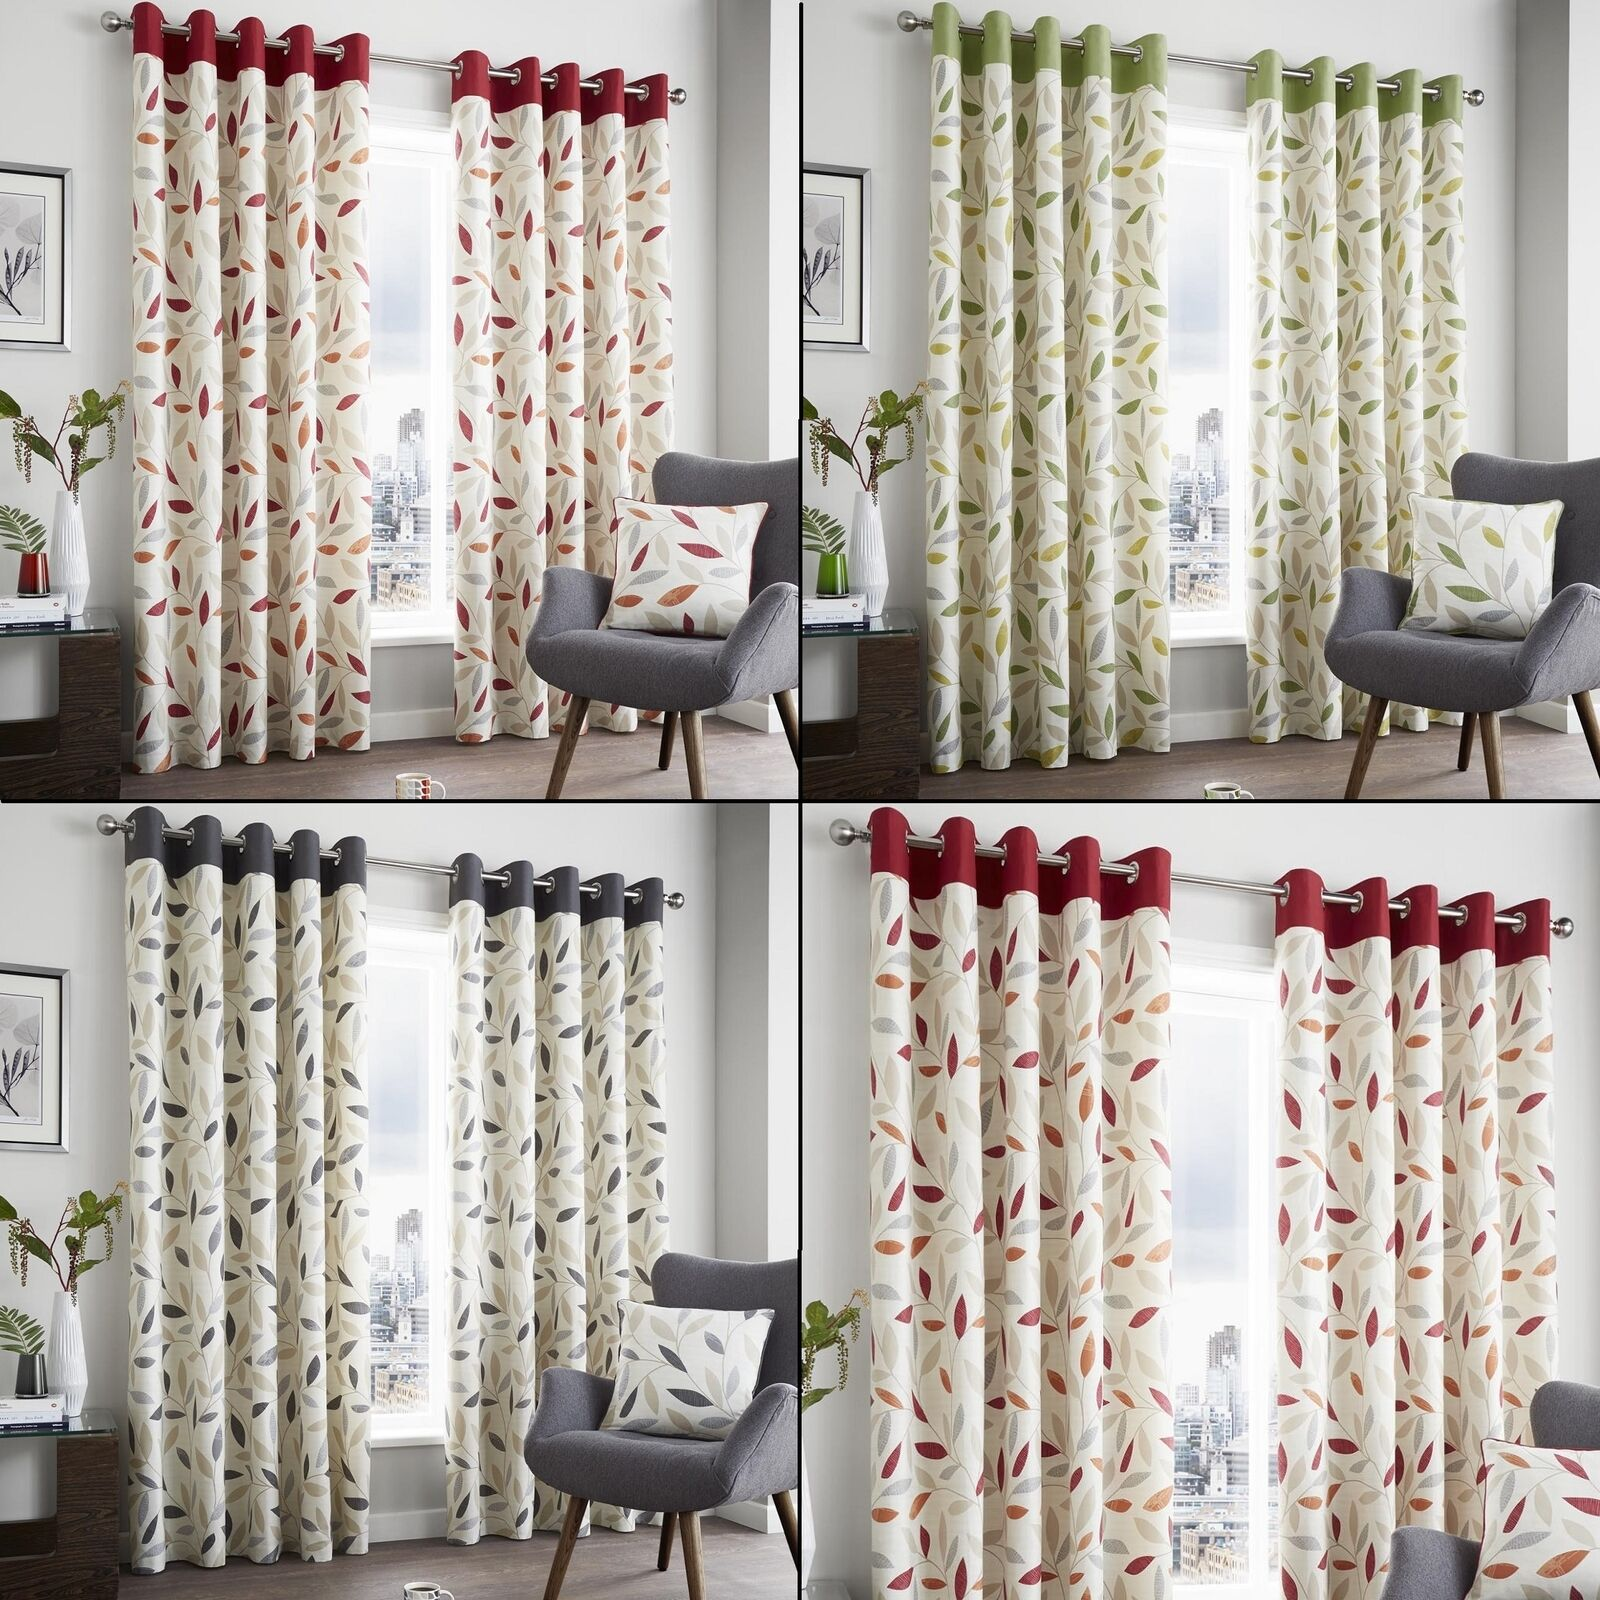 Fusion - BEECHWOOD - 100% Cotton Modern Leaf Trail Eyelet Ring Top Curtains